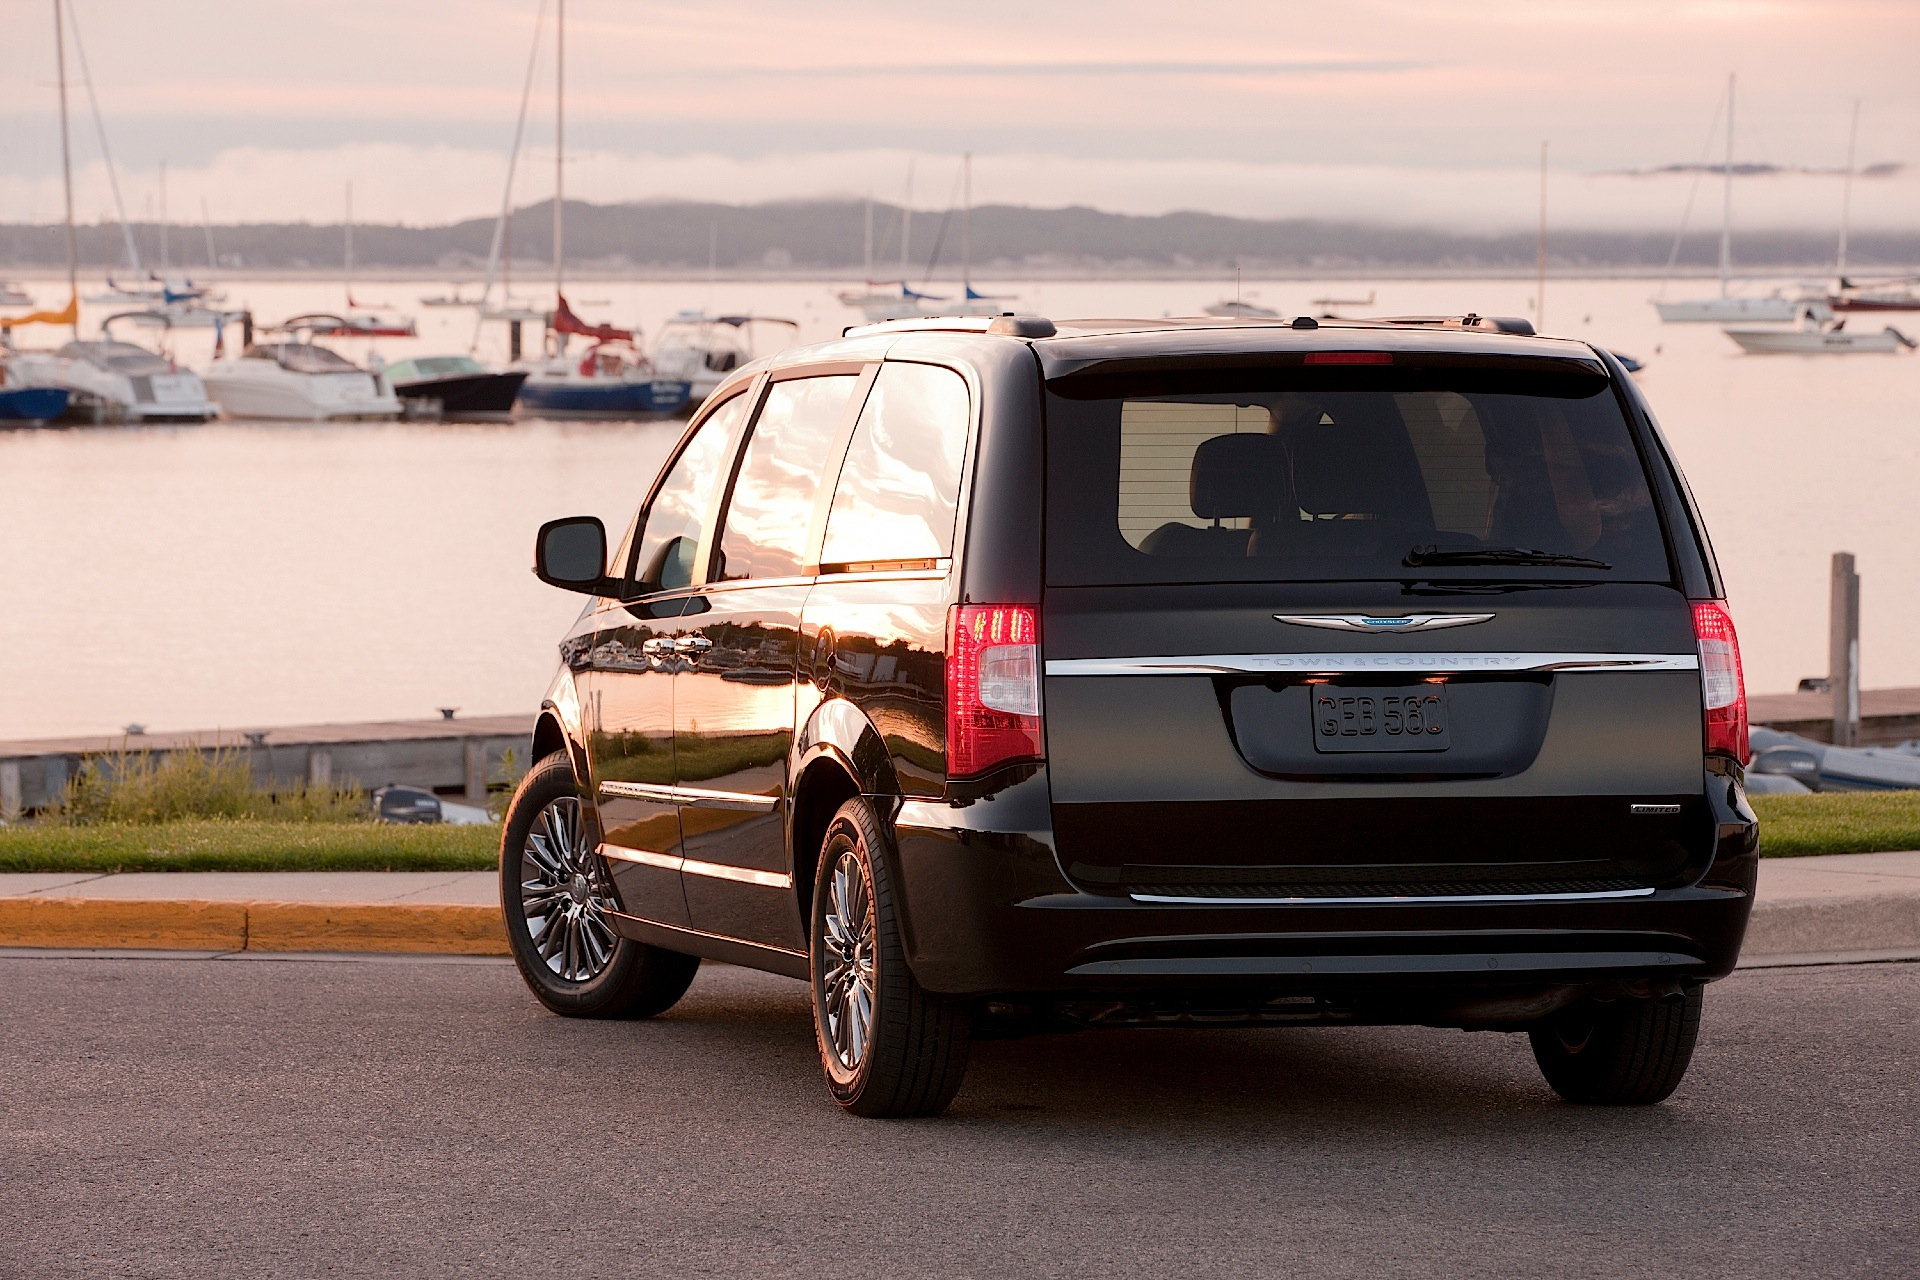 2008 chrysler town & country specs